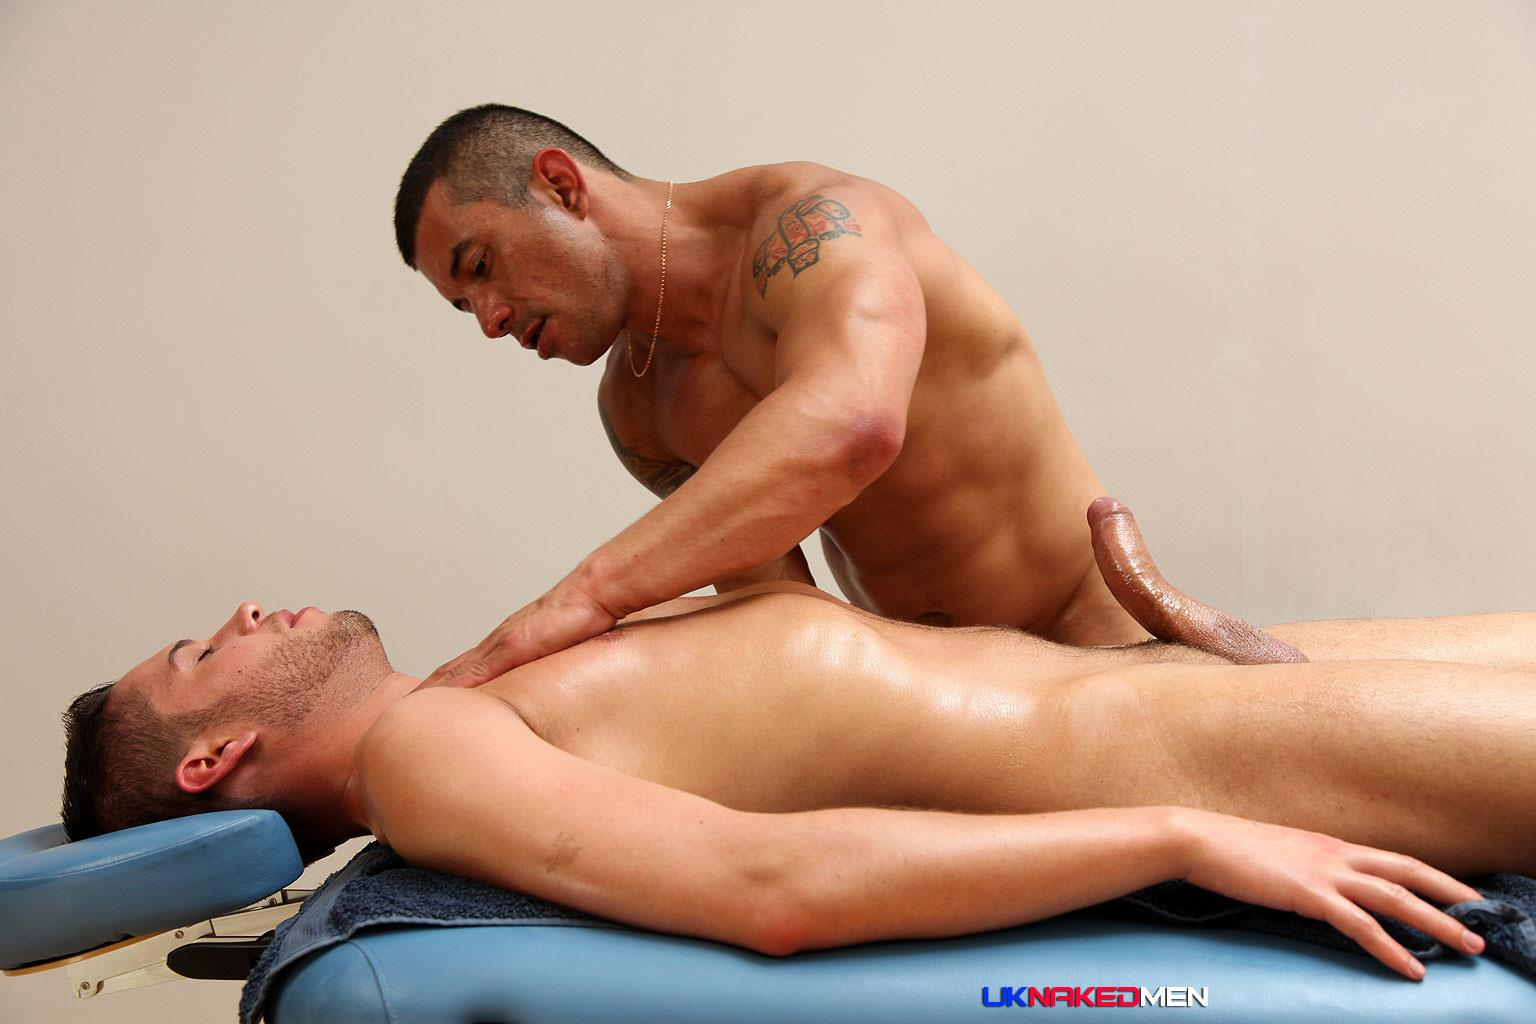 UK-Naked-Men-Gio-Cruz-and-Mark-Coxx-Big-Muscle-Uncut-Cock-Guys-Fucking-Amateur-Gay-Porn-11 Muscle Daddy Fucks an Amateur Younger Guy With A Huge Uncut Cock